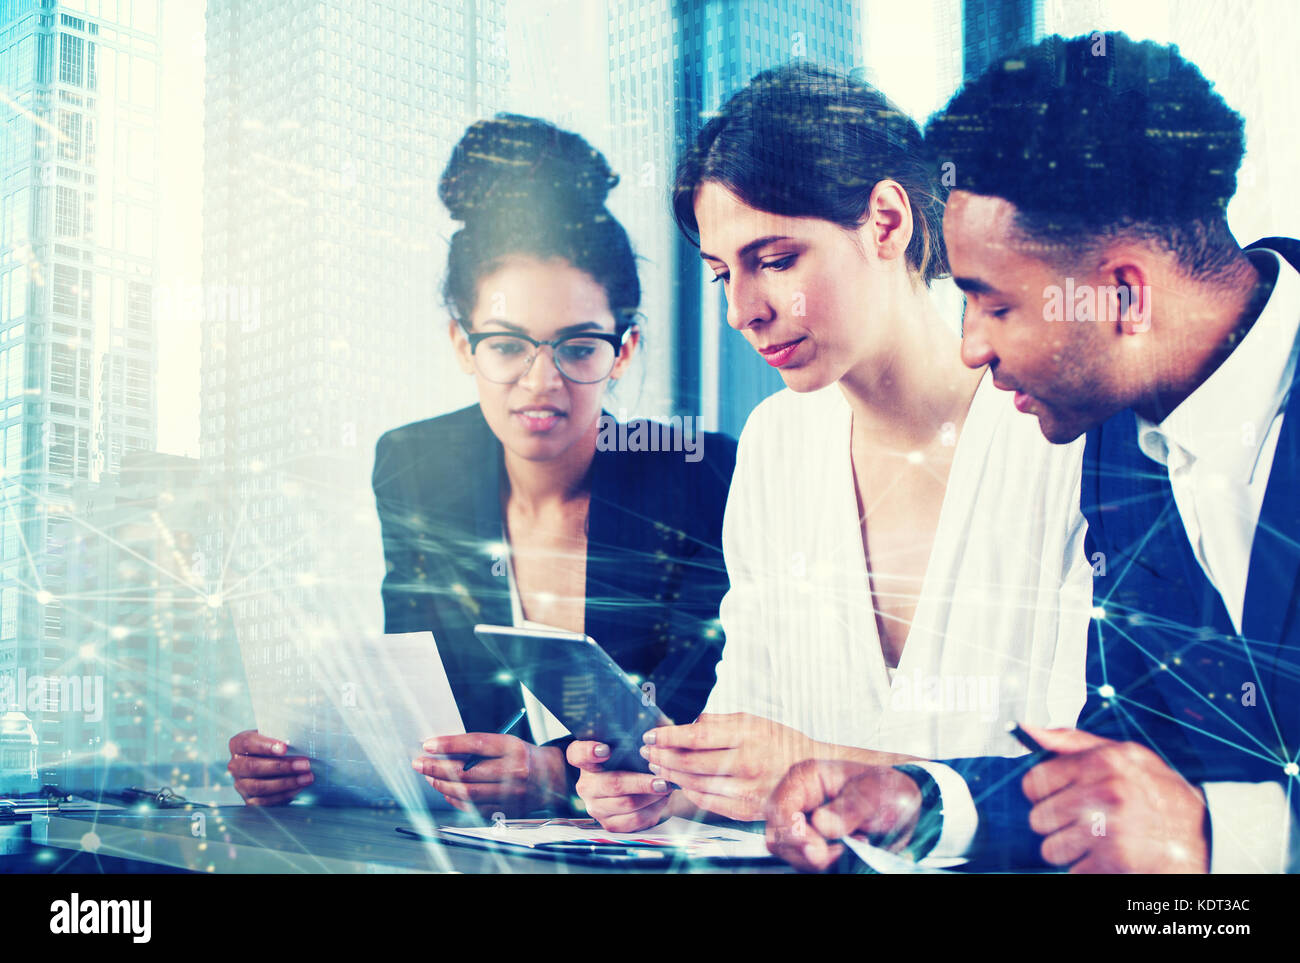 Businessperson in office with network effect. concept of partnership and teamwork - Stock Image